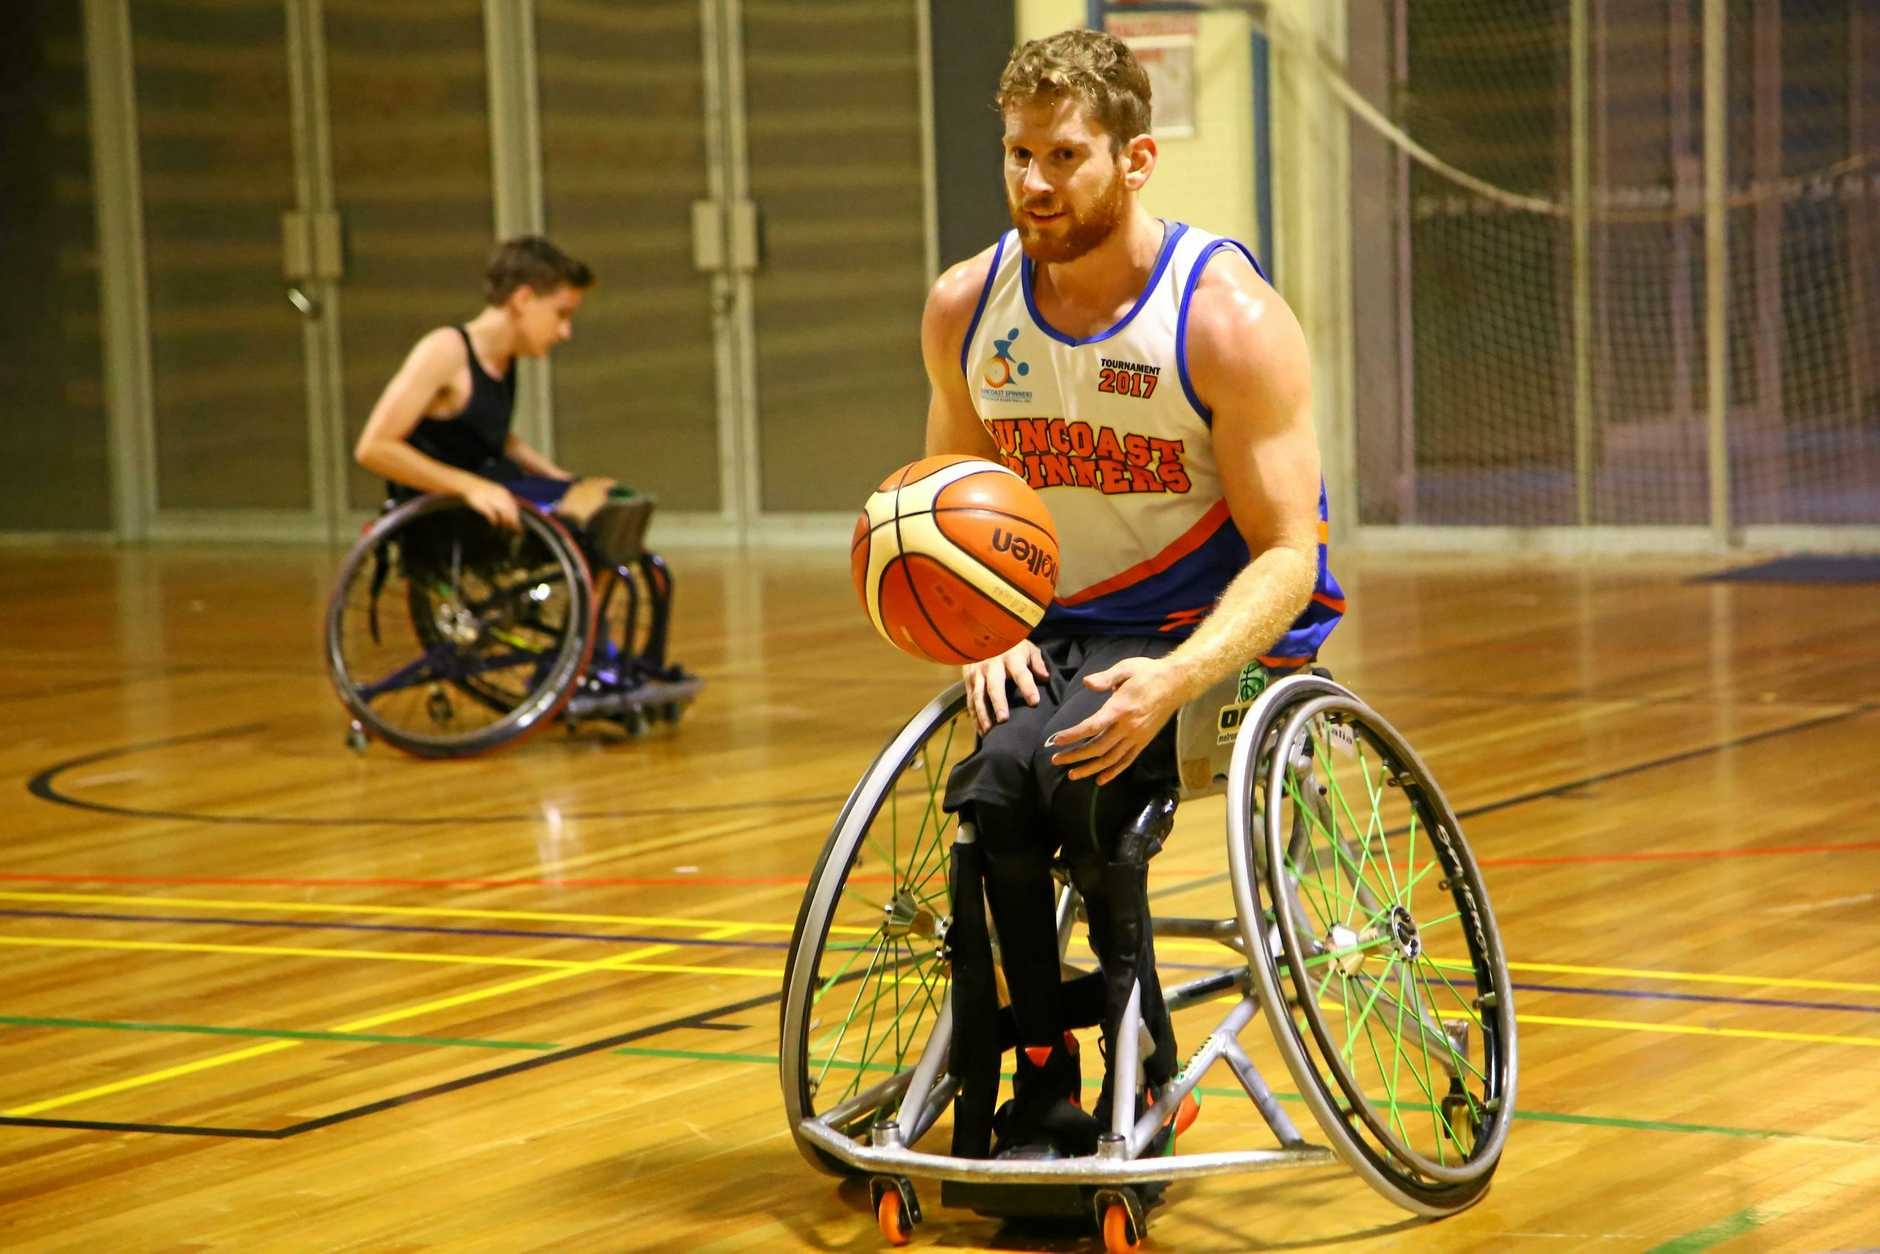 AUSTRALIAN REP: Steven Elliott represented Australia in wheelchair basketball and is considered among his peers as one of the best in his sport.